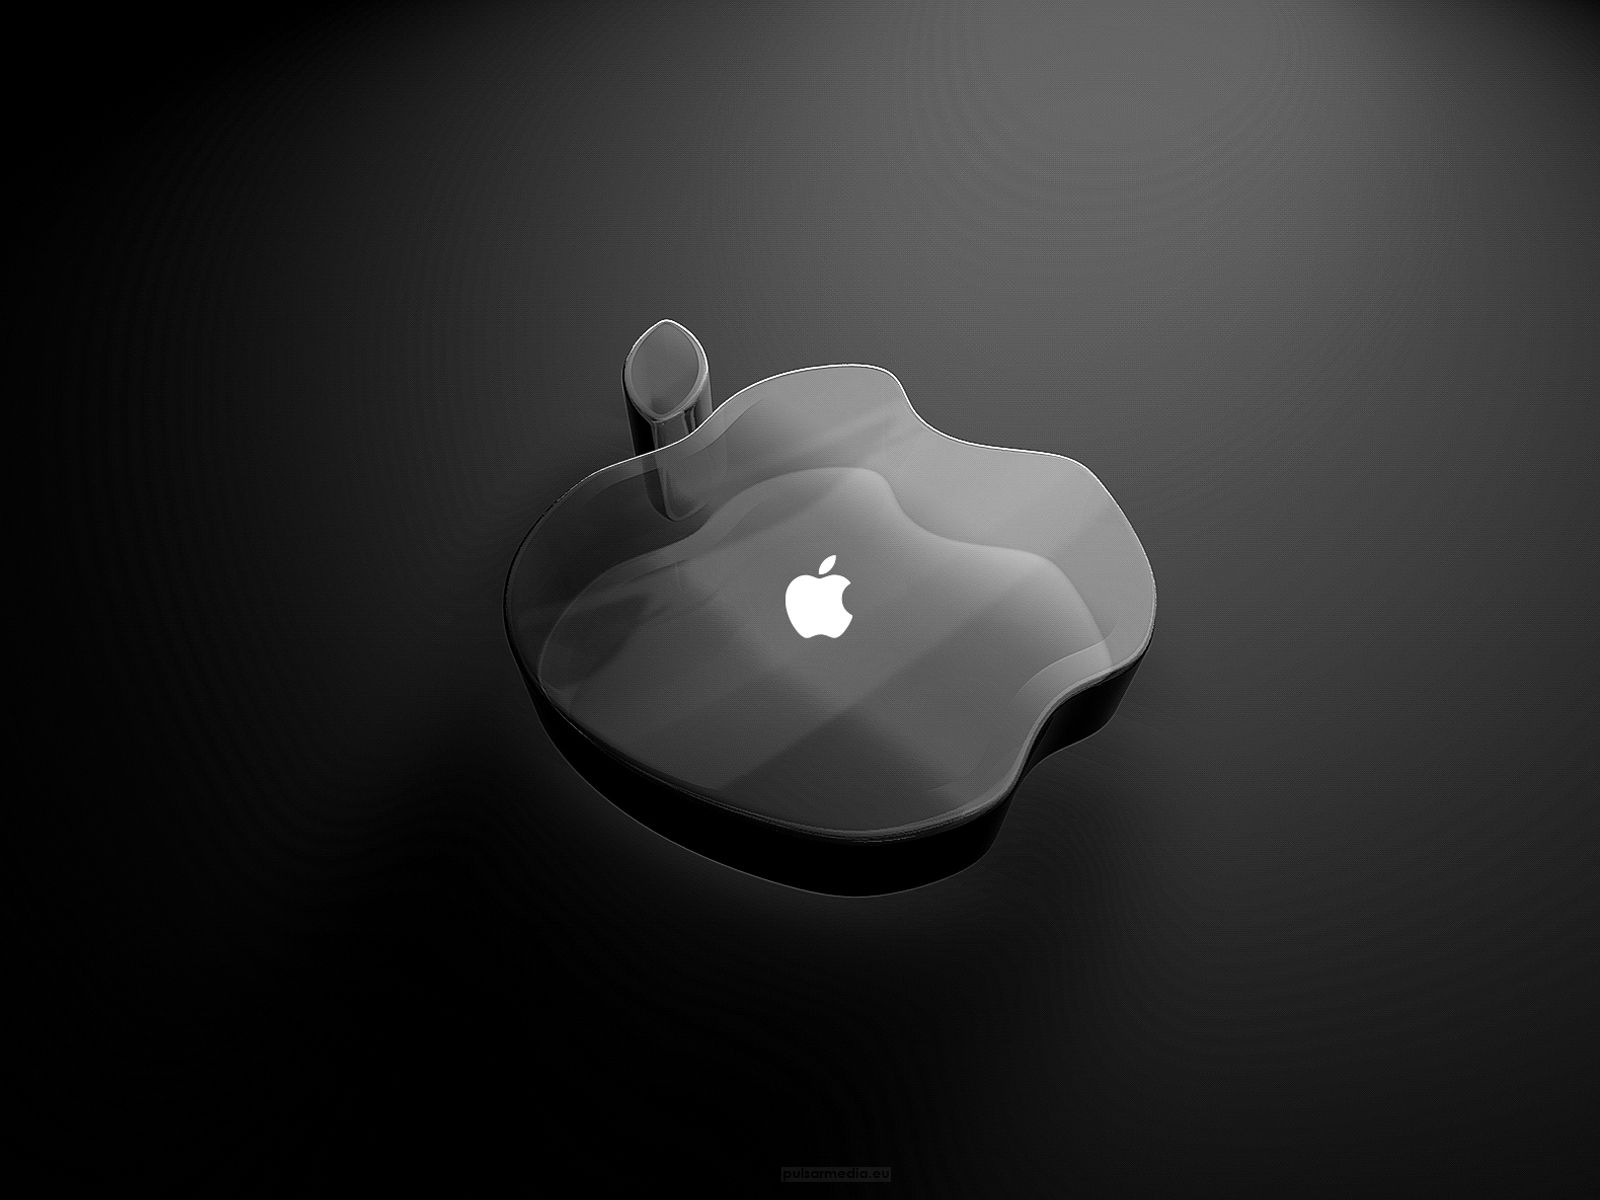 apple ipad wallpaper downloads - bing images | ipad wallpaper